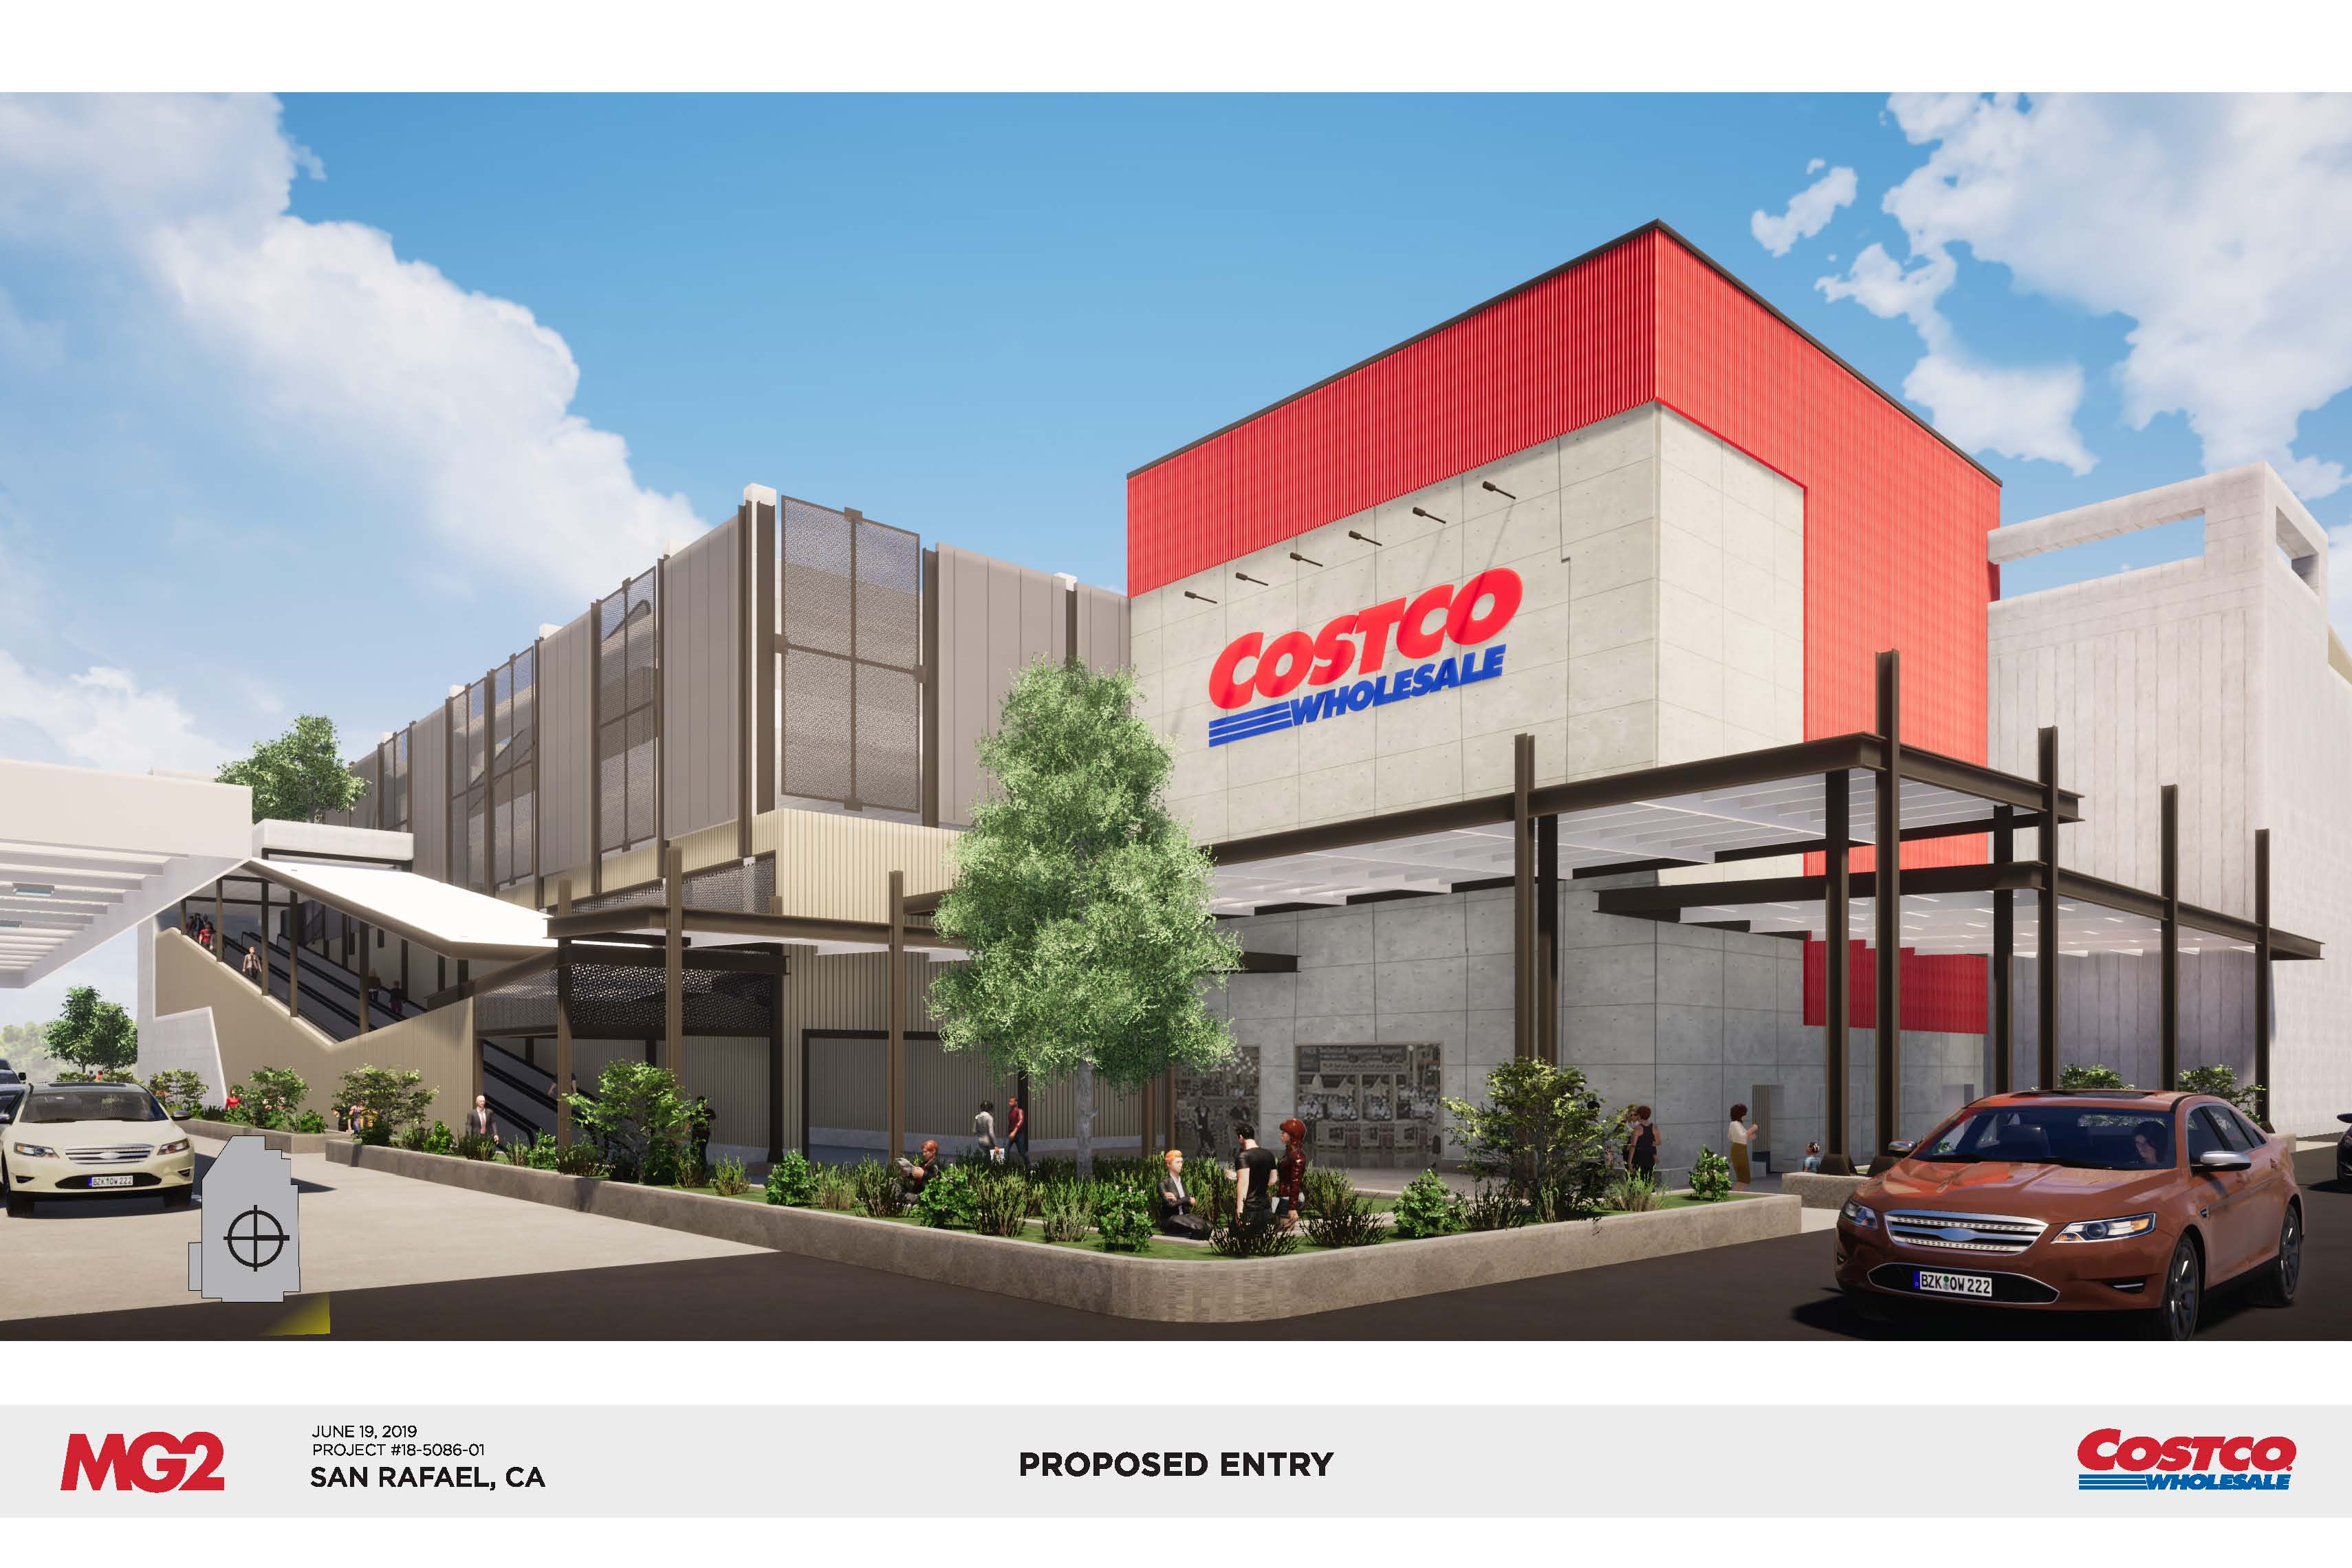 Costco Proposed Entry